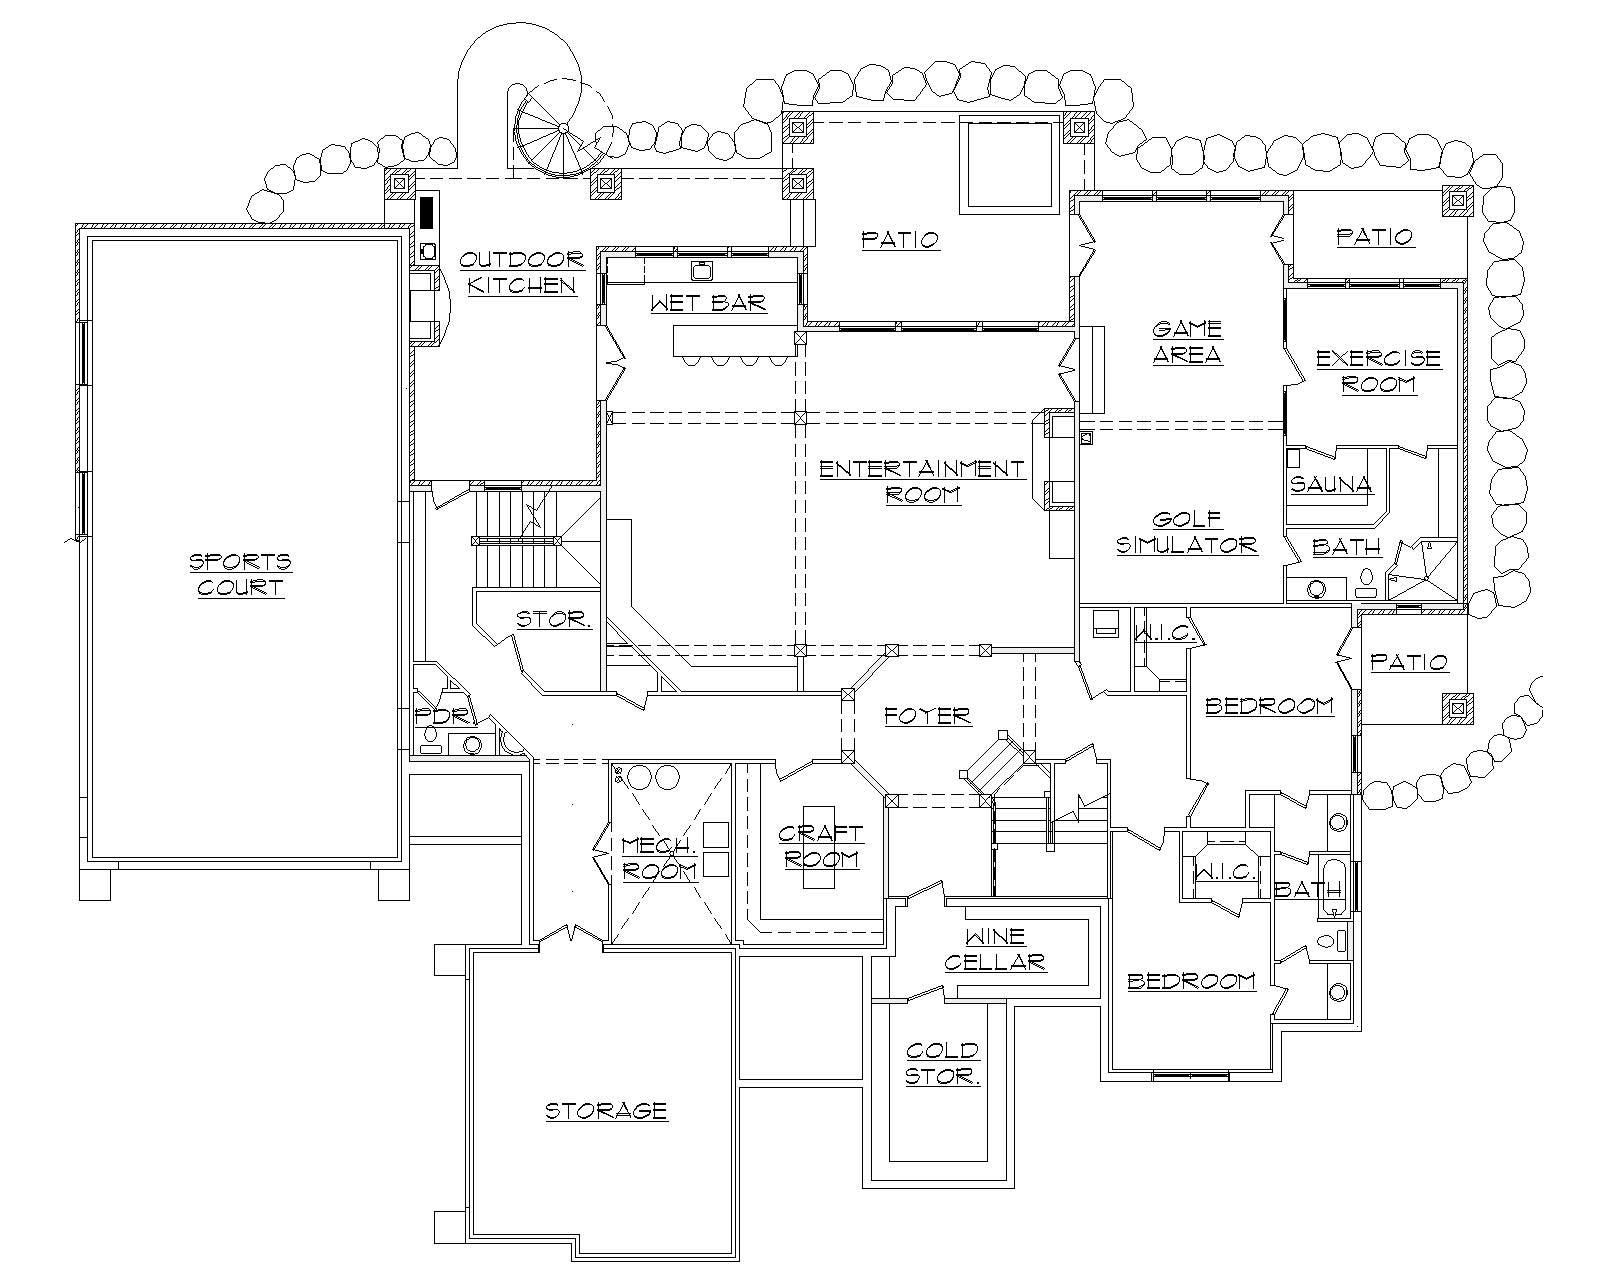 Floor plan of luxury home with sports court on lower level.